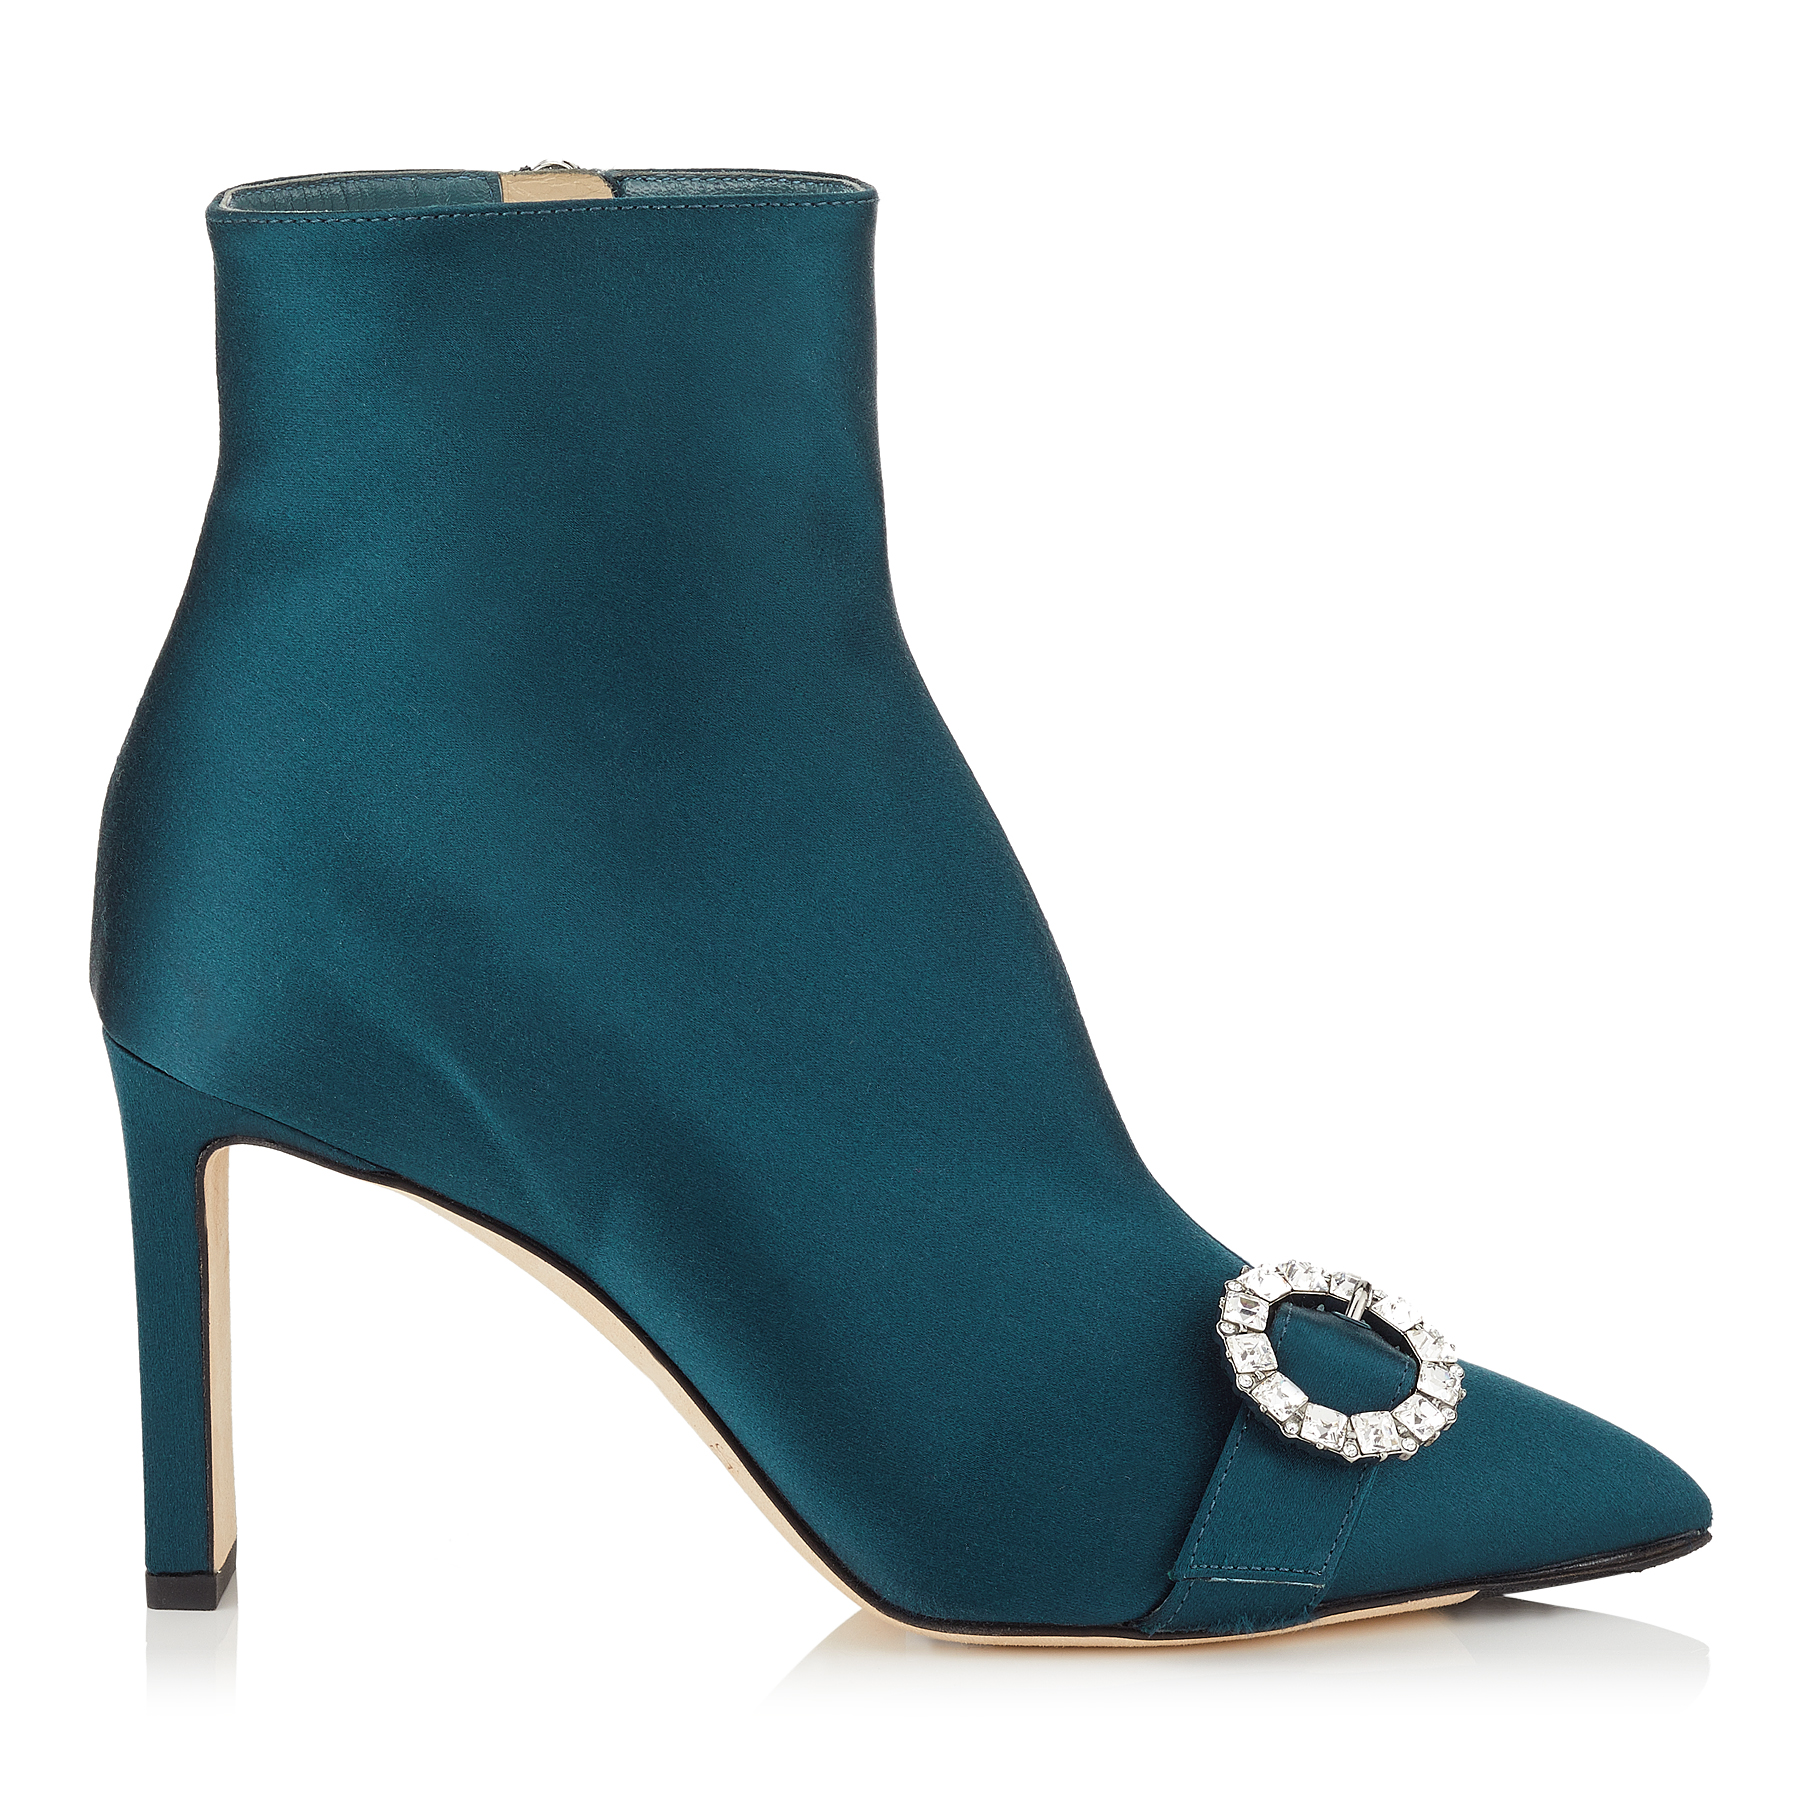 HANOVER 85 Dusk Blue Satin Booties with Crystal Buckle by Jimmy Choo